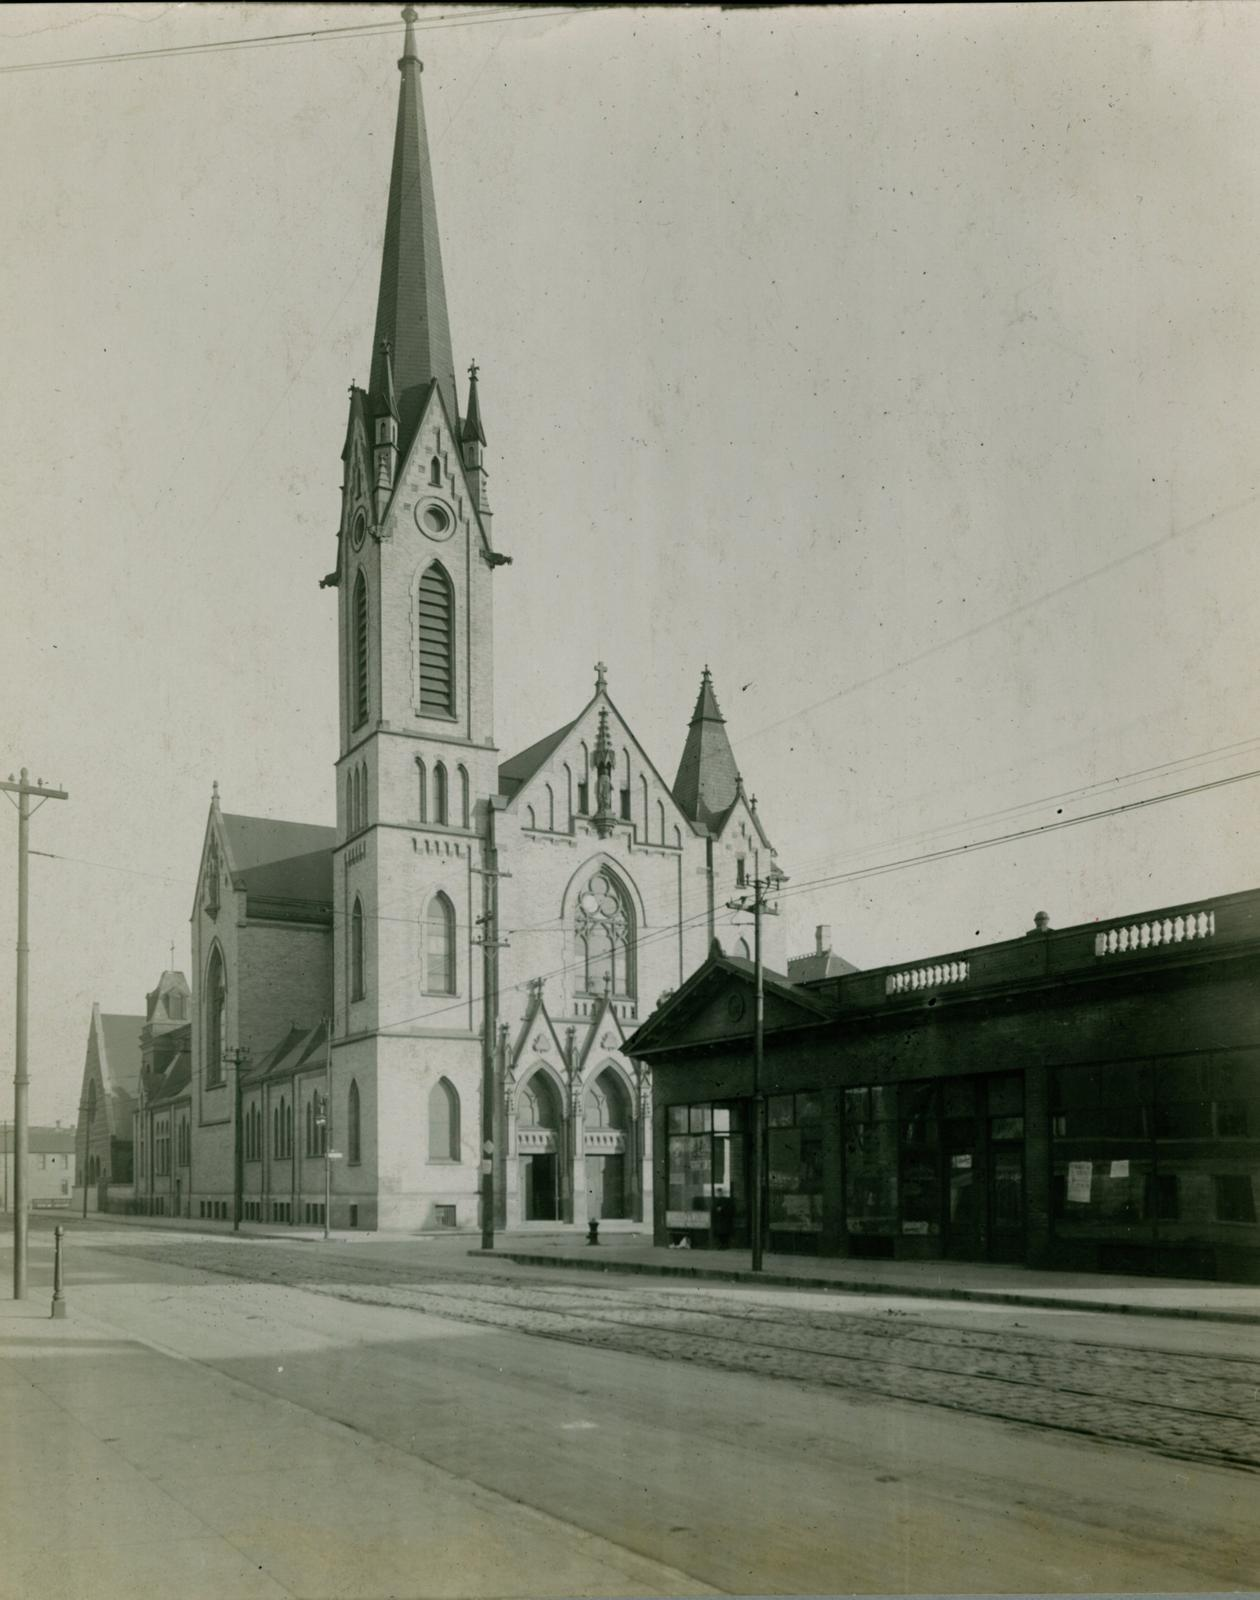 Church of the Immaculate Conception, Bridgeport, Chicago, between 1913 and 1914